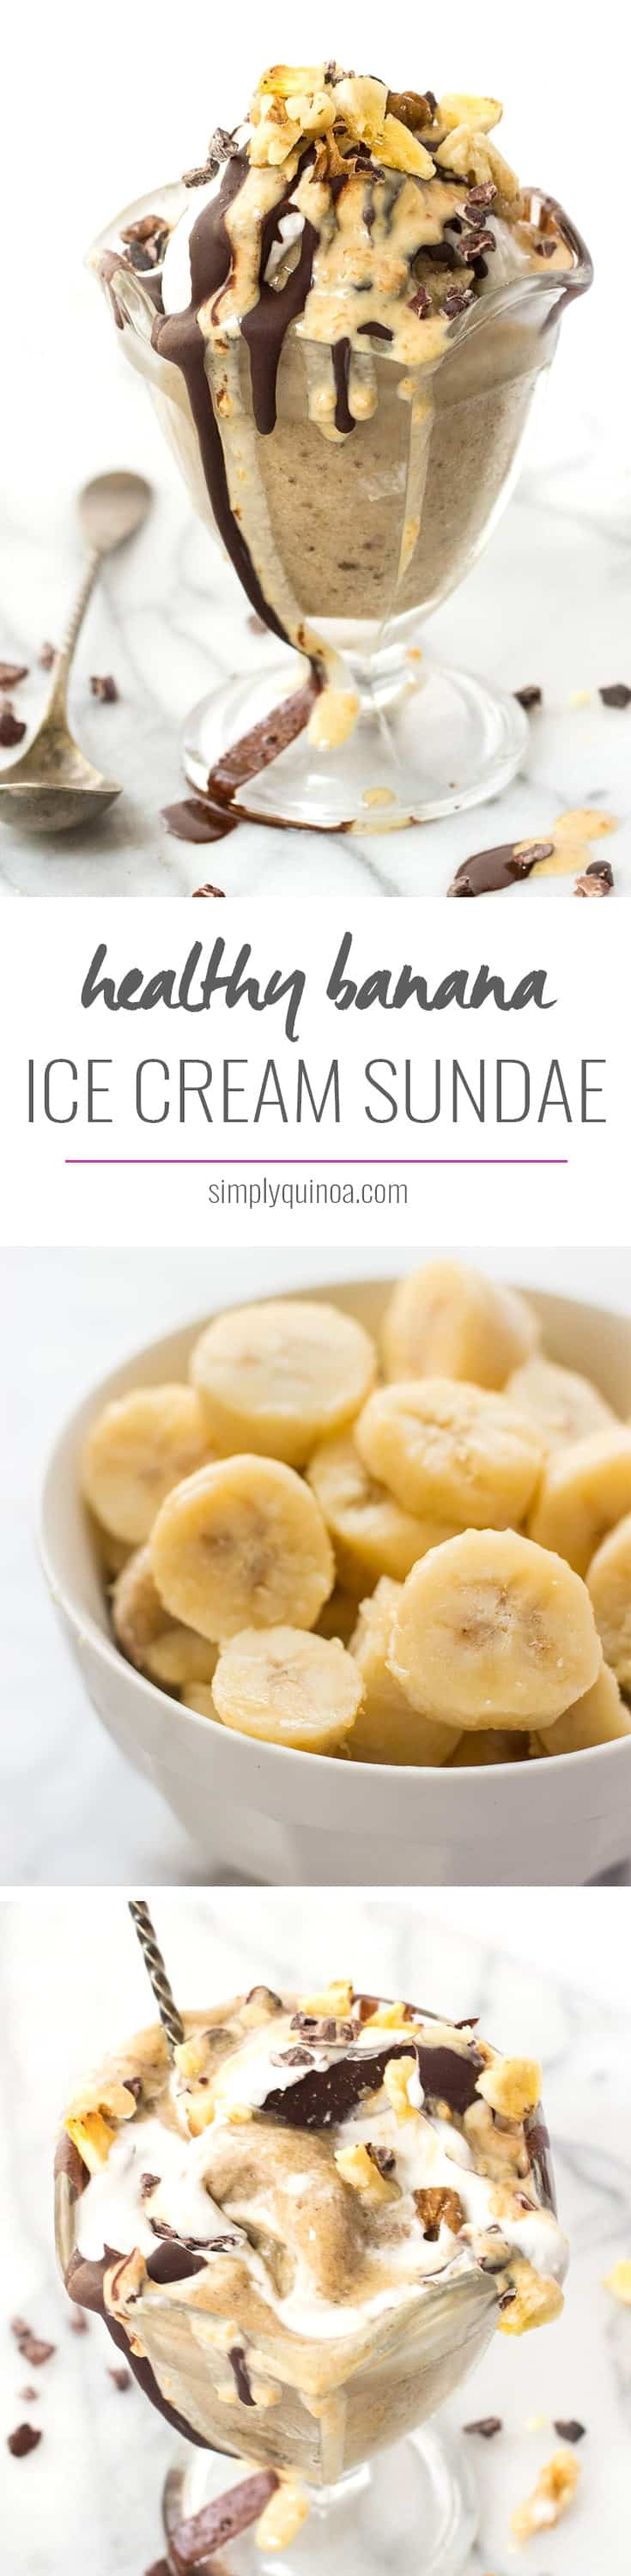 The BEST banana ice cream sundae EVER! all healthy ingredients, totally decadent and vegan too!